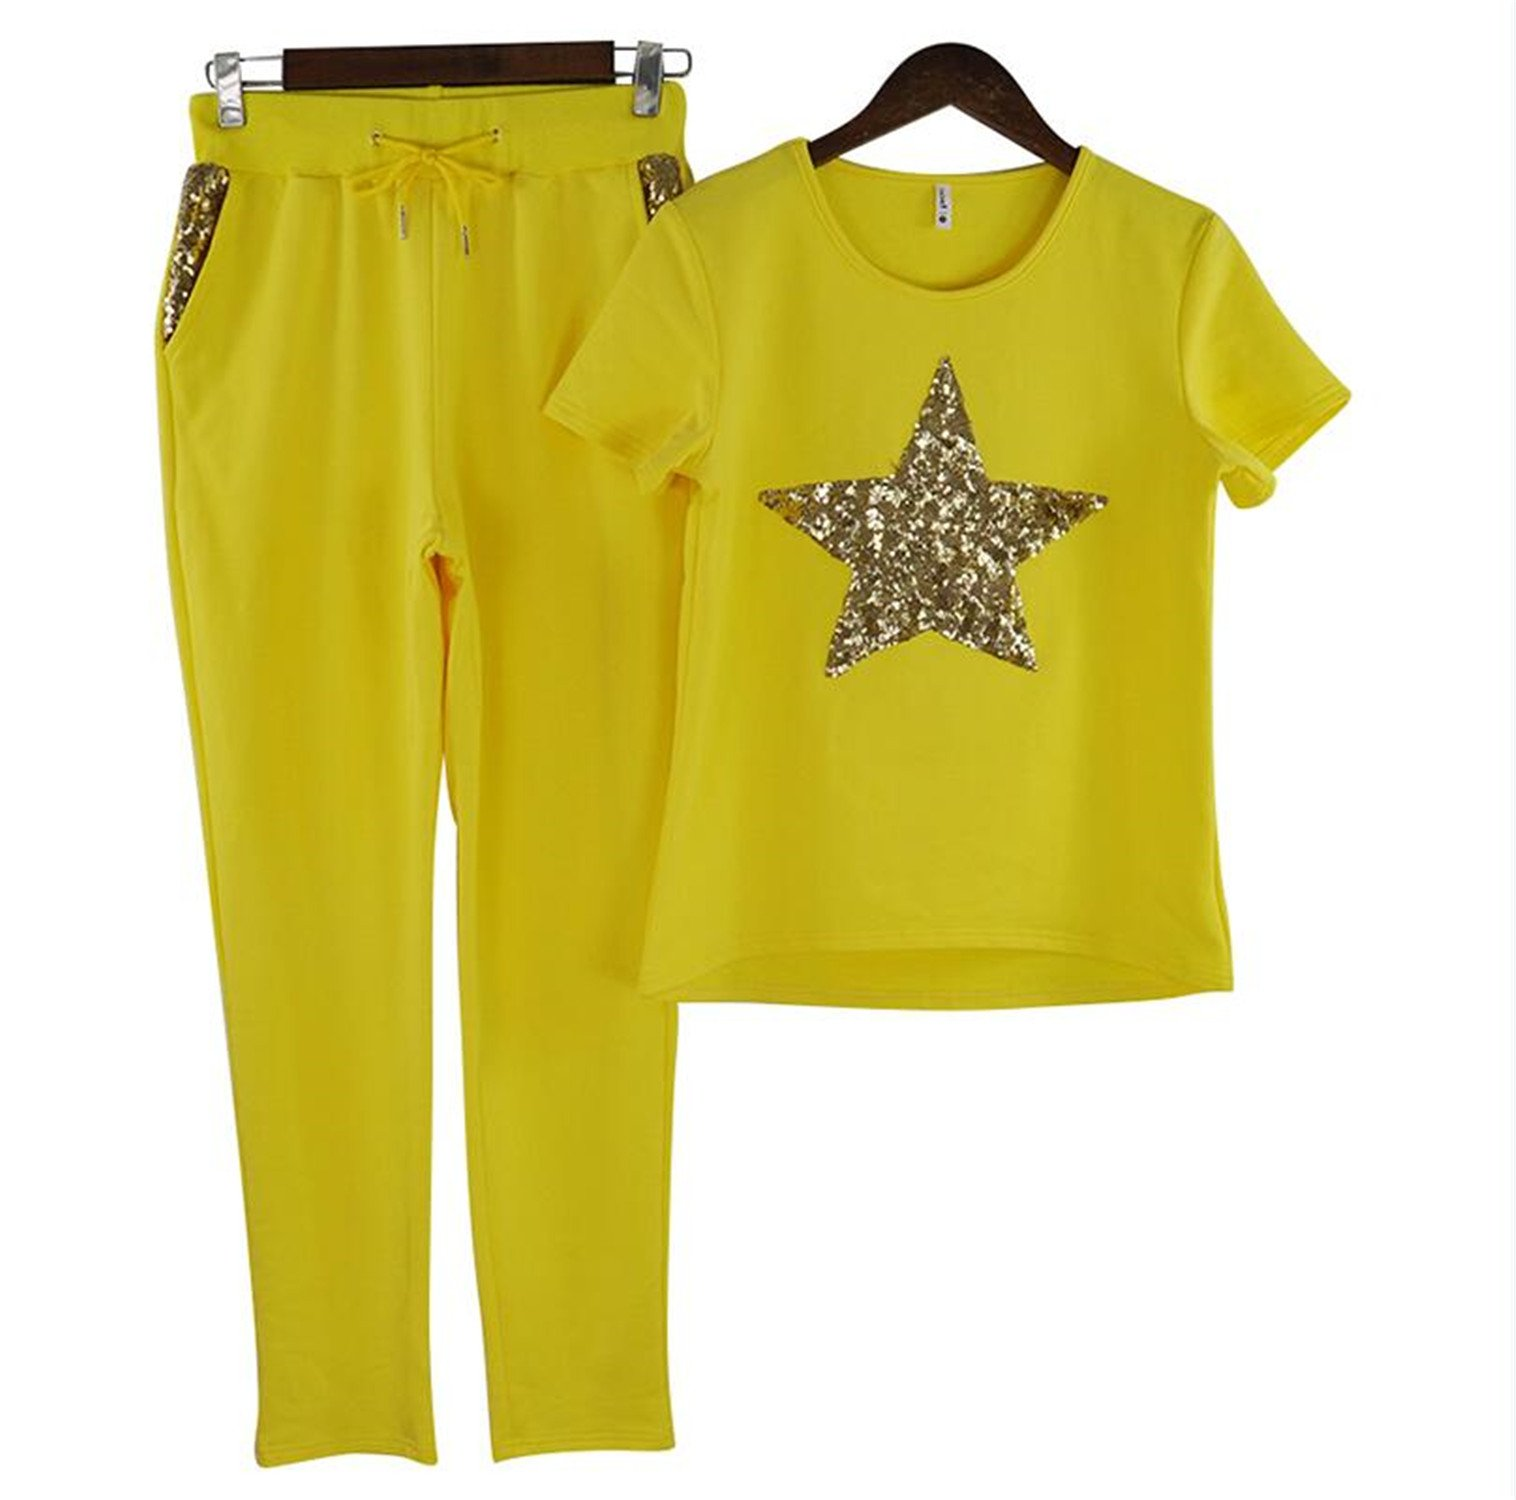 spyman Summer Women Casual Suits Short Sleeve T-Shirt and Pant 2-Piece Set Yellow L